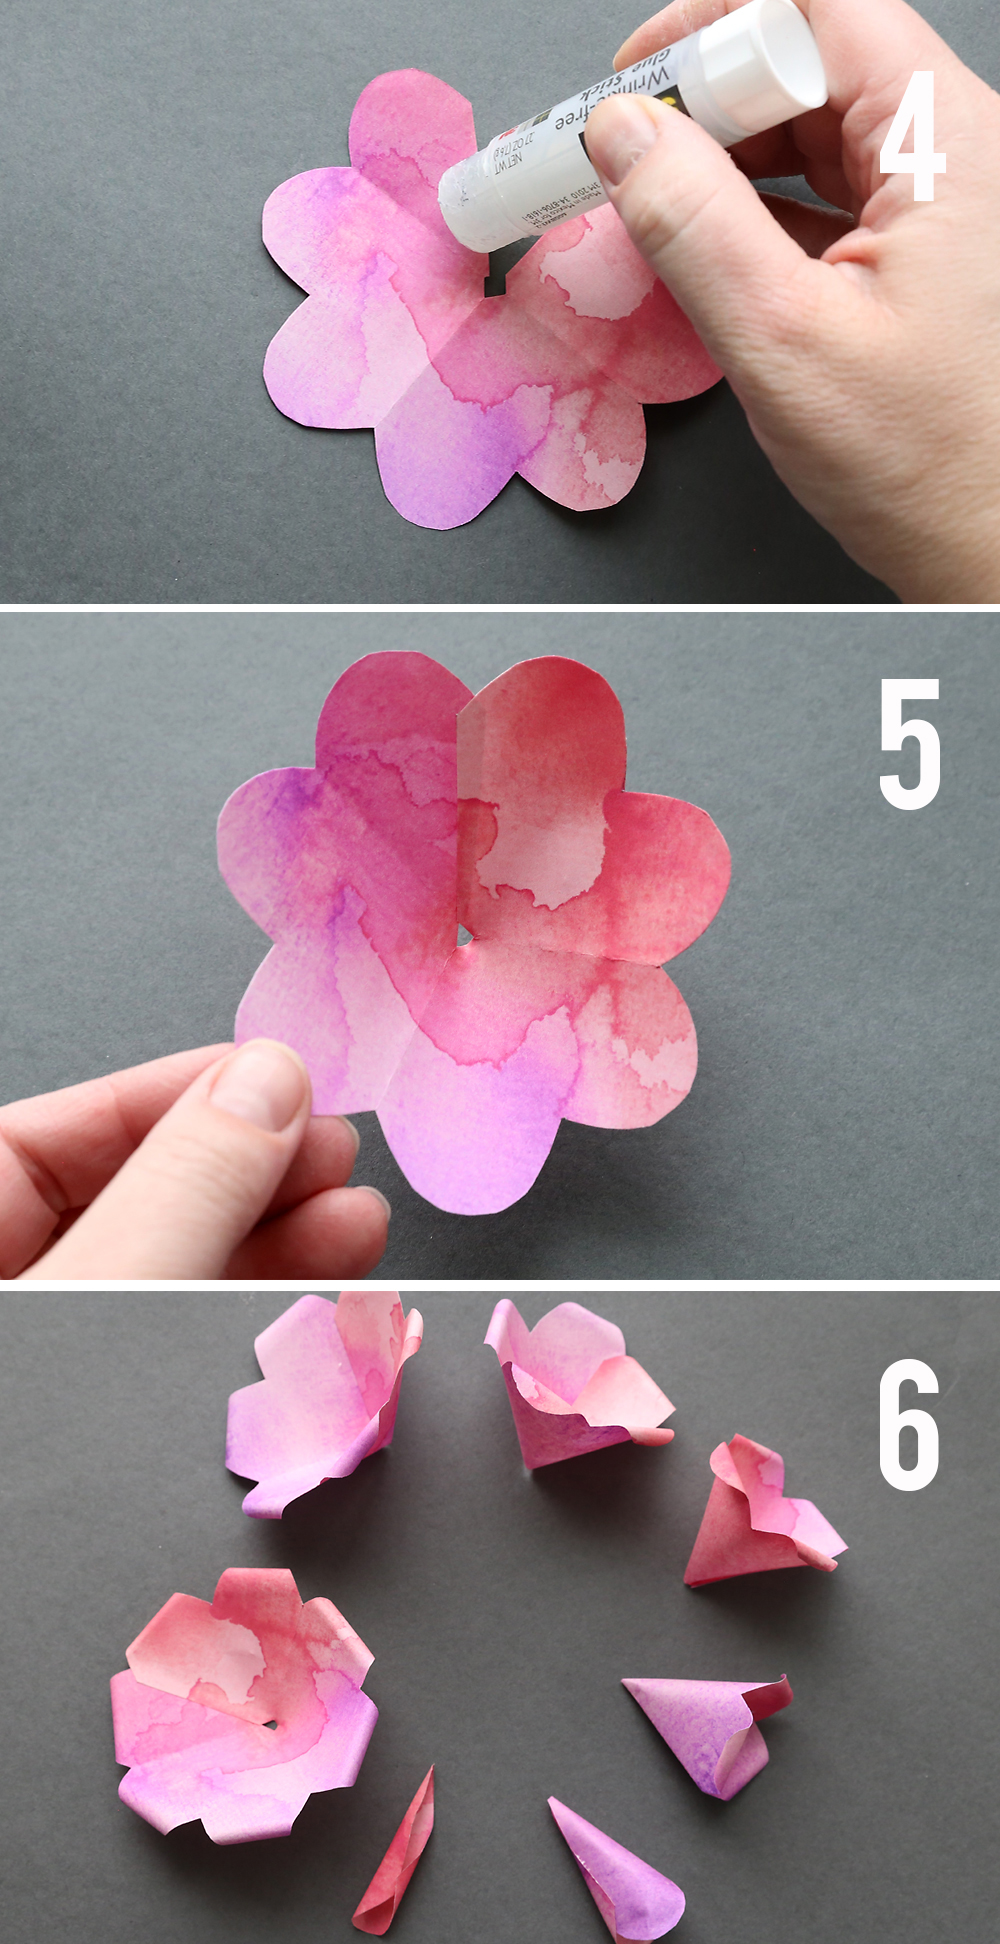 Make gorgeous paper roses with this free paper rose template its learn how to make paper roses with these beautiful paper rose template step by step mightylinksfo